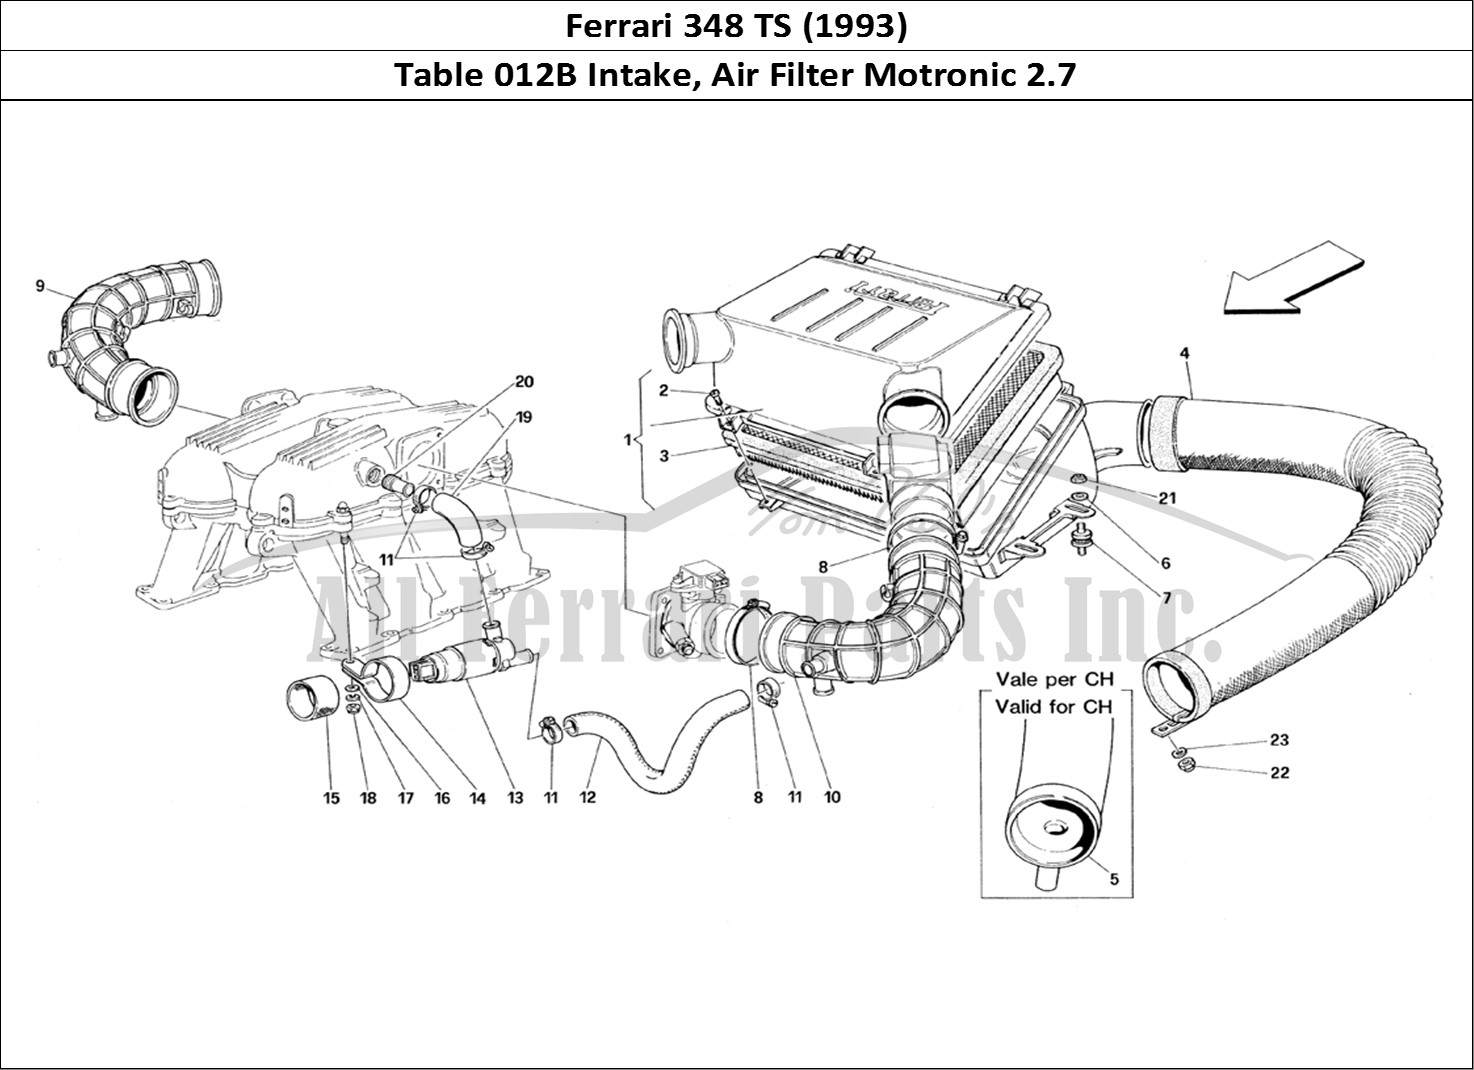 Buy Original Ferrari 348 Ts 012b Intake Air Filter